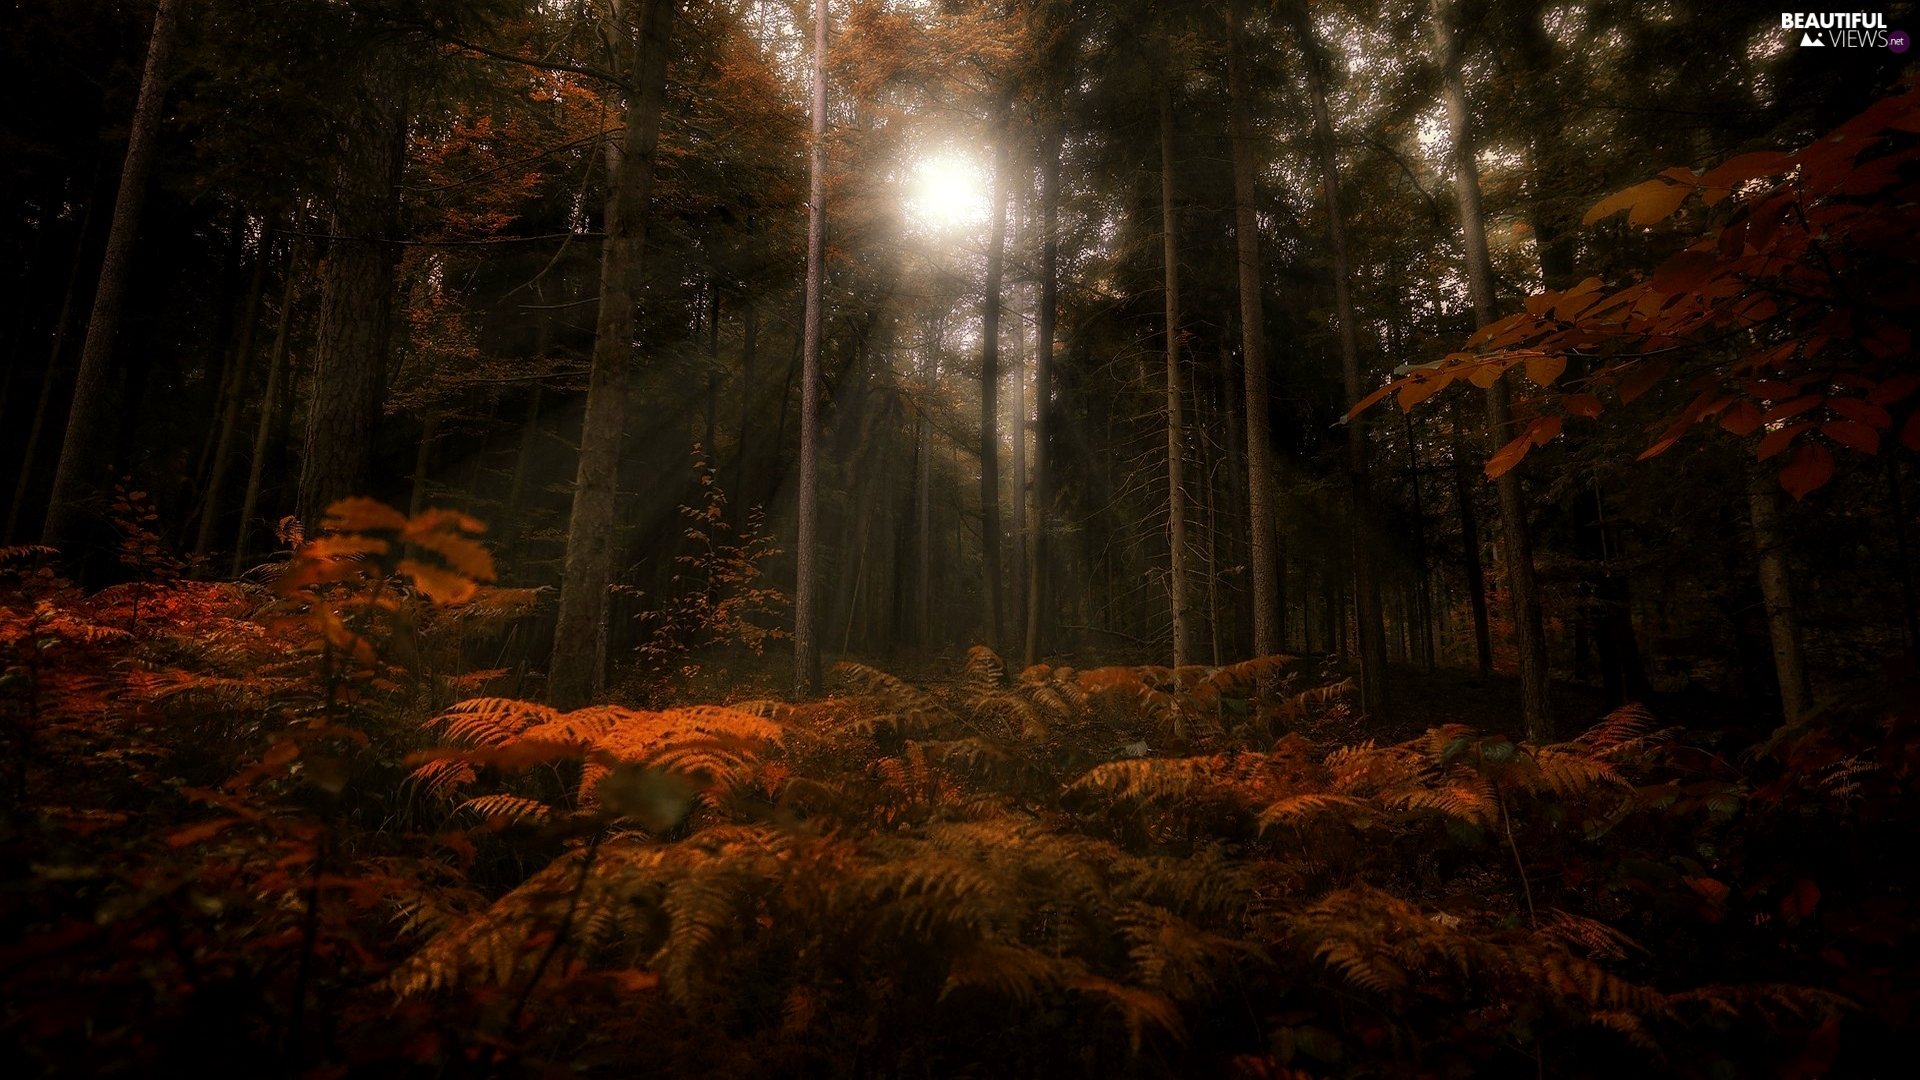 autumn, fern, light breaking through sky, forest